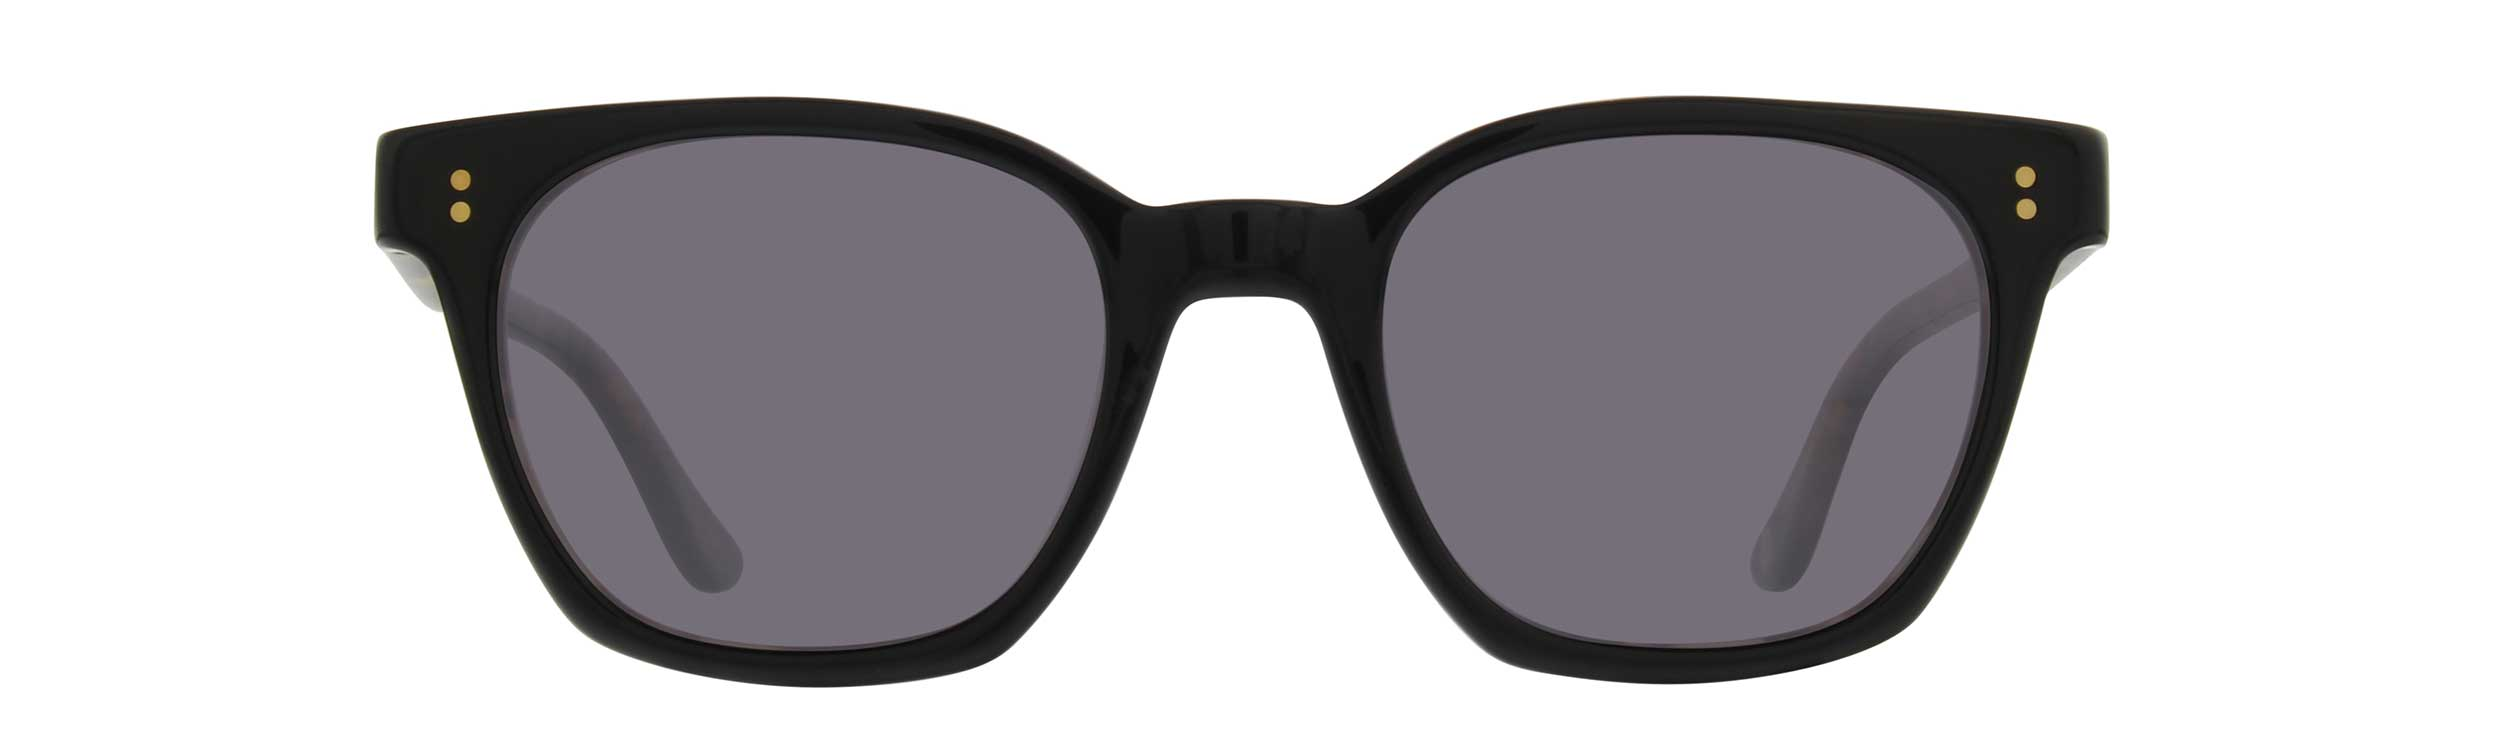 Central Square Sunglasses